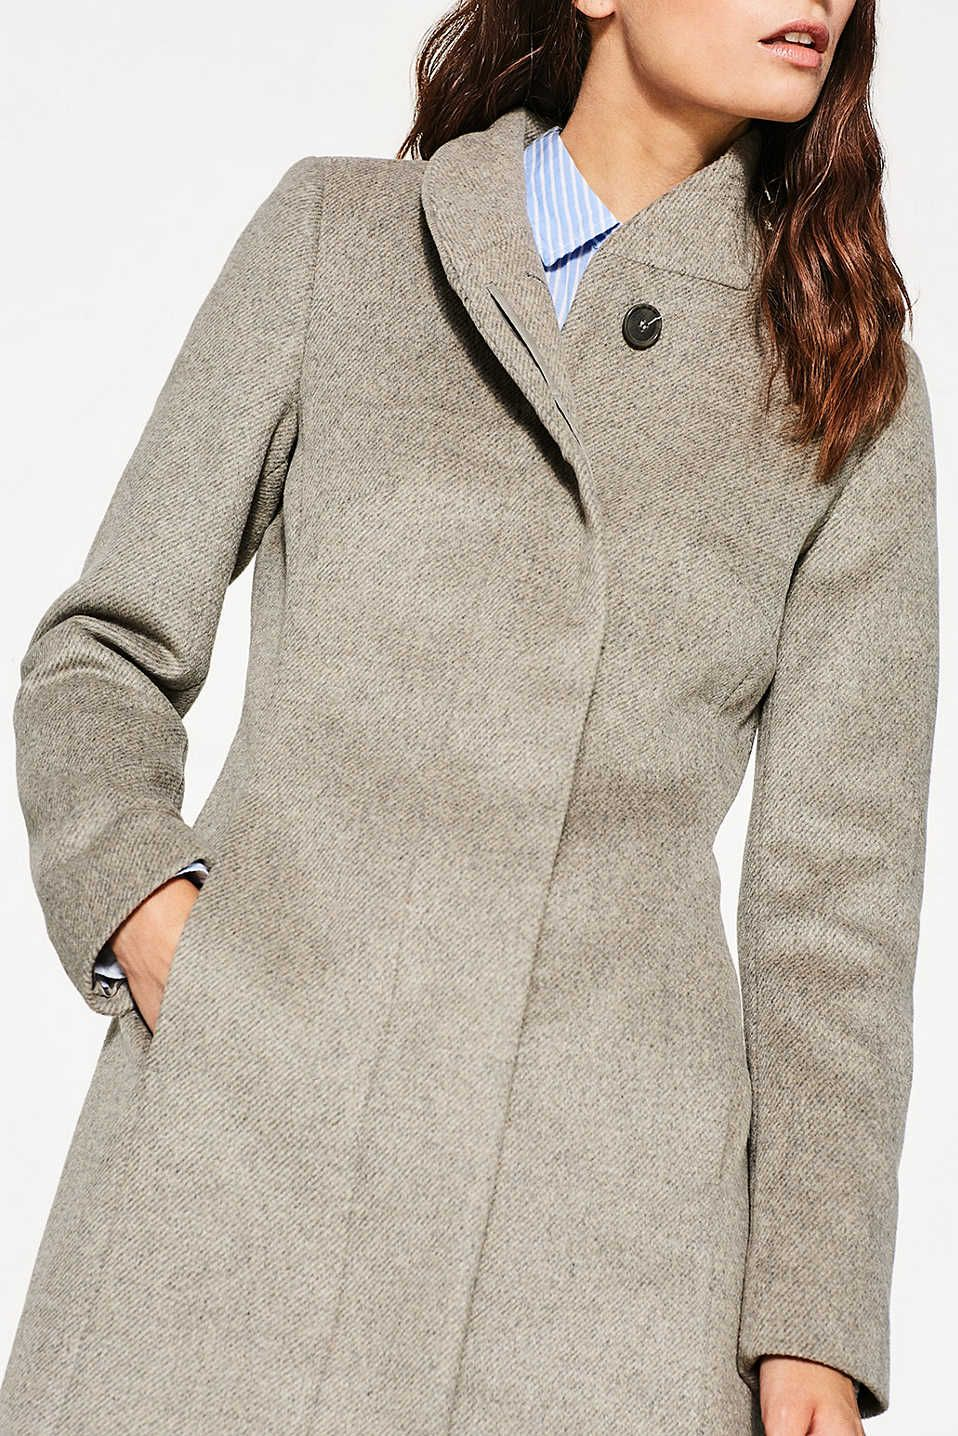 Esprit Wool Blend Coat With Stand Up Collar At Our Online Shop Clothes Outfit Accessories Coat [ 1436 x 958 Pixel ]